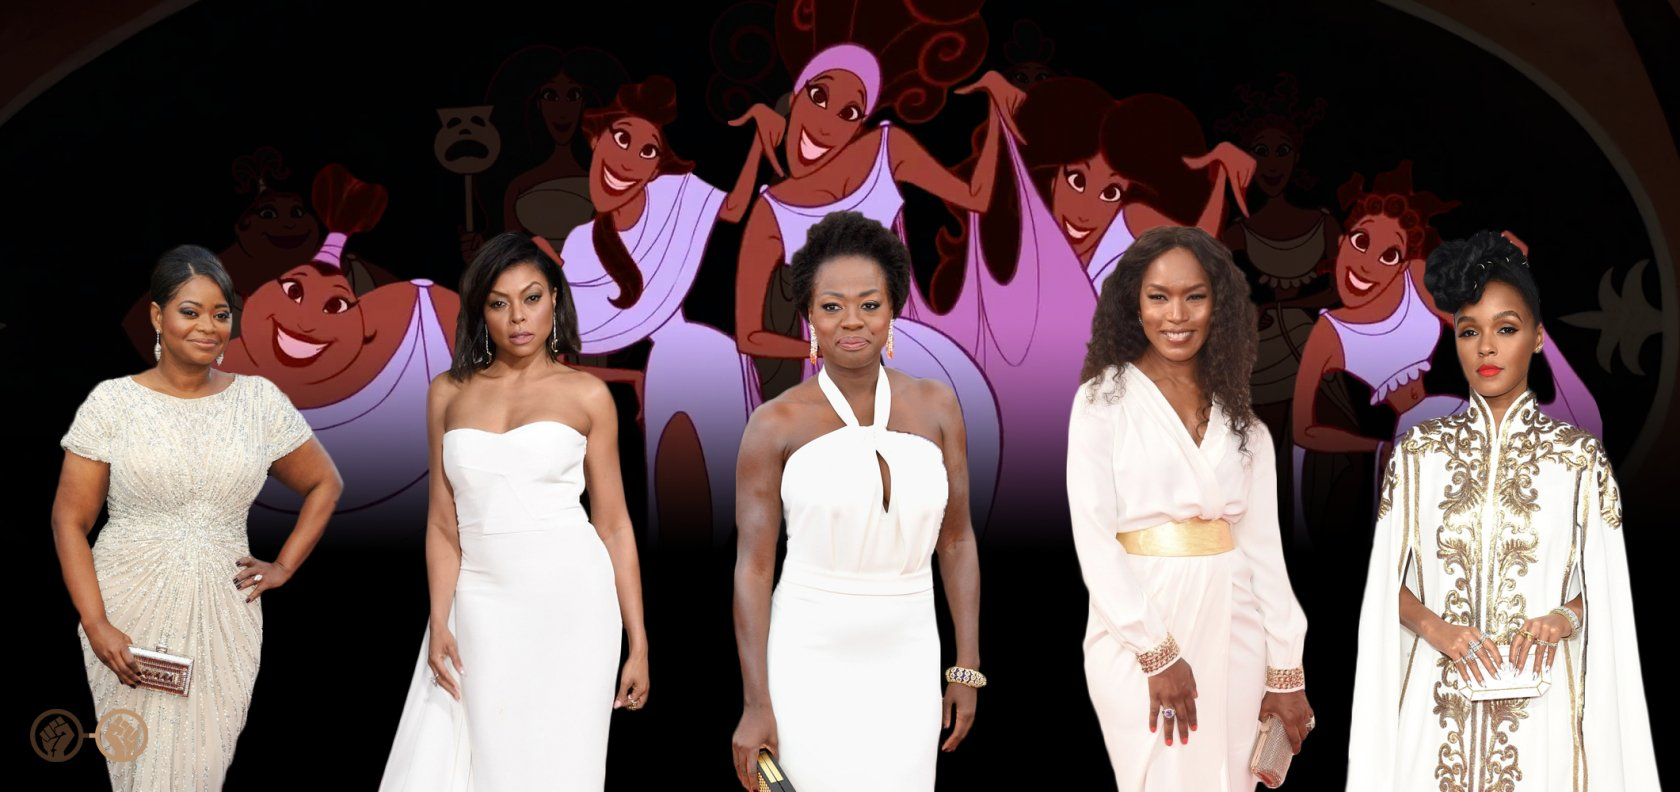 Hercules Live Action Fancast: Meet The Muses! Full Fancast Here: https://t.co/GKOVJ2cdi8 https://t.co/xucCQhtBrB